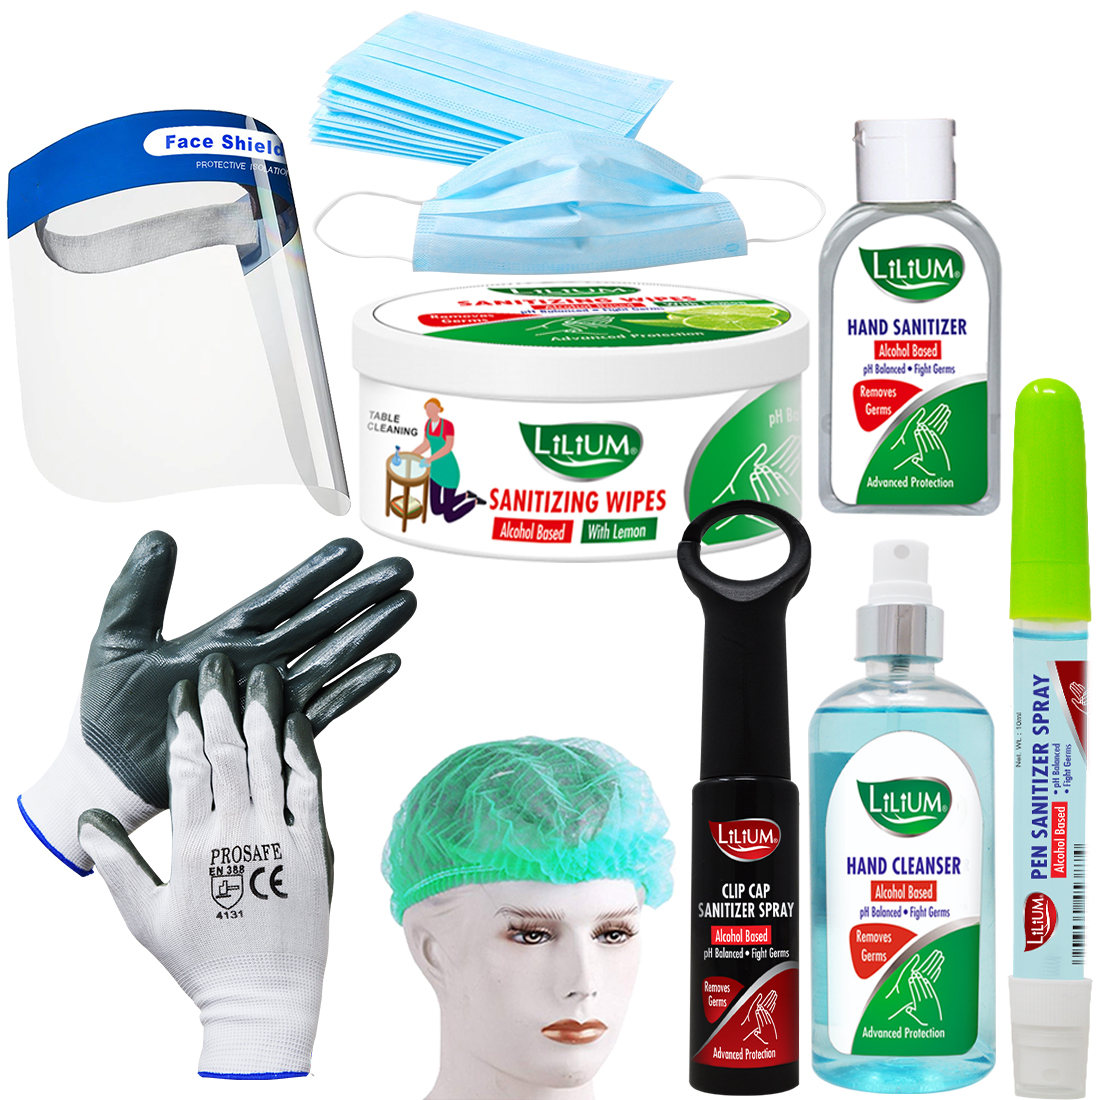 Lilium Complete Safety Hygiene Combo Including Mask & Cleanser, GC1271, Pack of 17